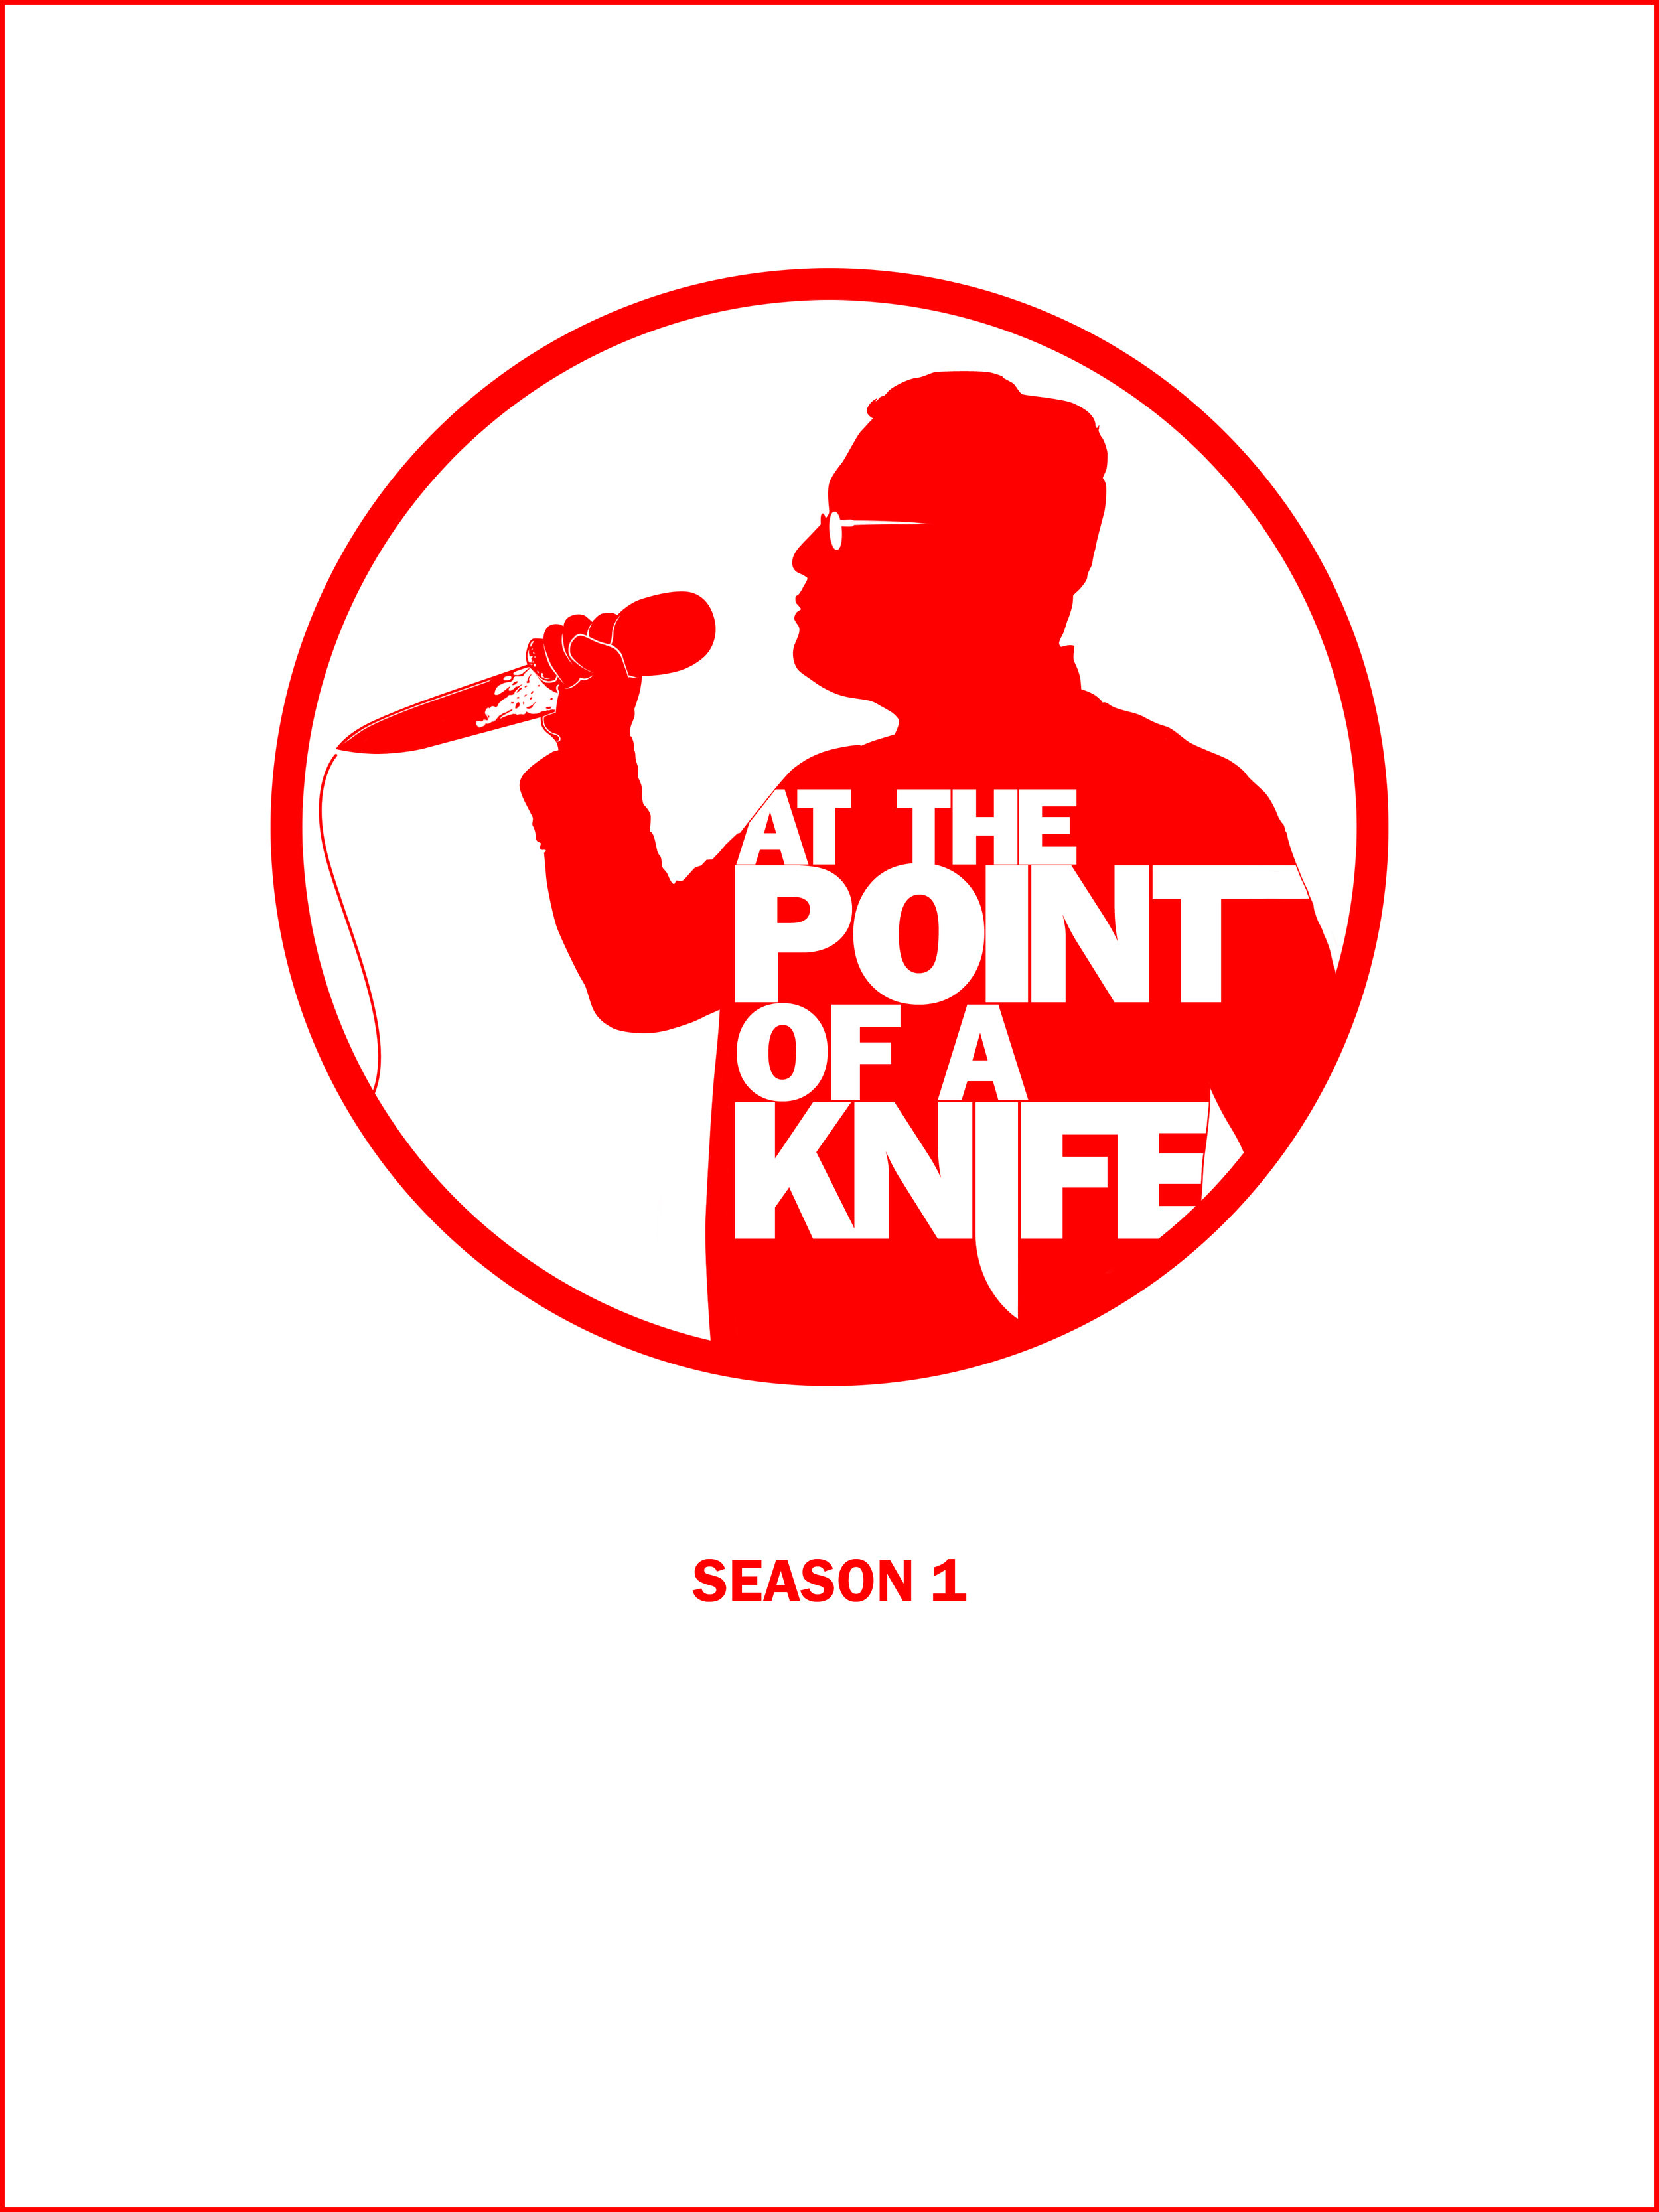 At The Point of A Knife Release Poster - Film and TV - Jonathan B Perez - cREAtive Castle Studios.jpg